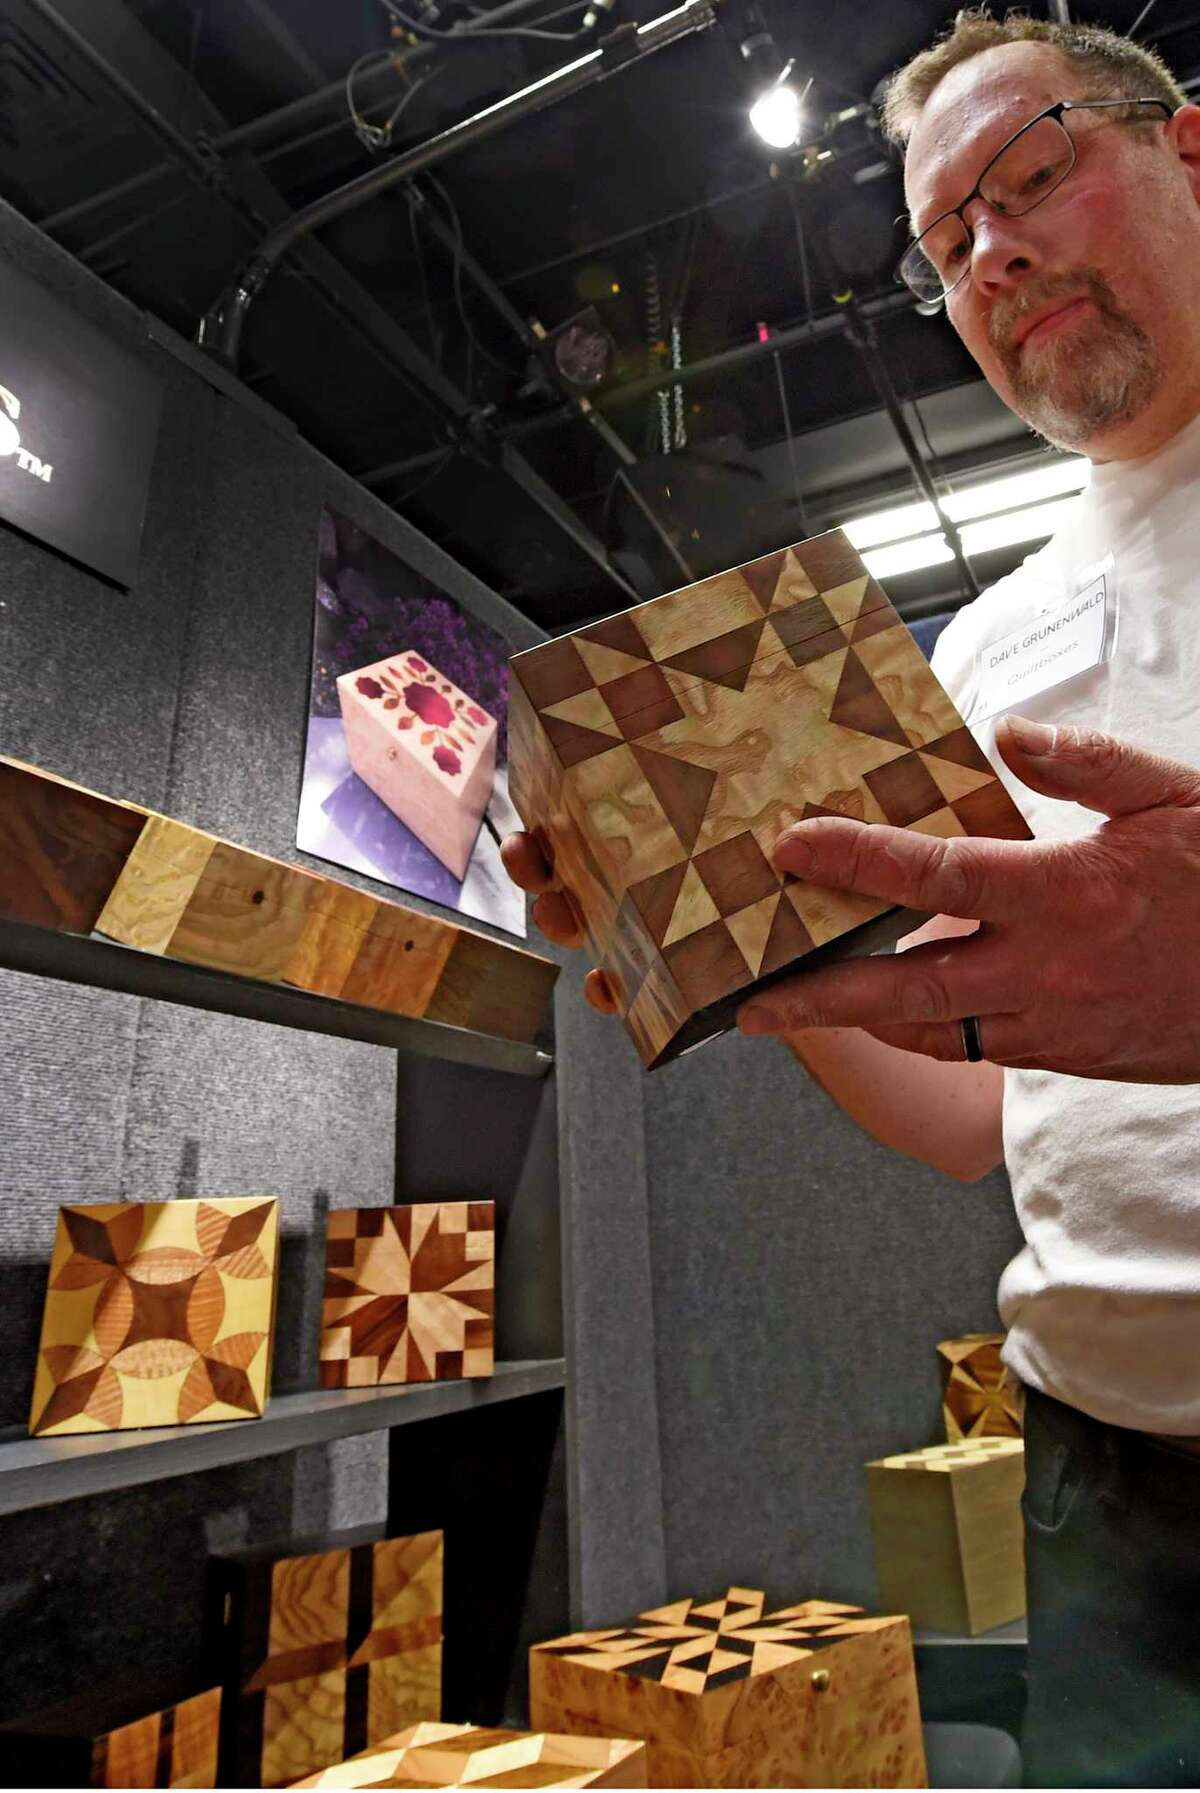 Dave Grunenwald of Quiltboxes of Poestenkill shows off his handiwork as the Collar City Craft Fest opens at the Arts Center of the Capital Region Friday April 28, 2017 in Troy, N.Y. (Skip Dickstein/Times Union)